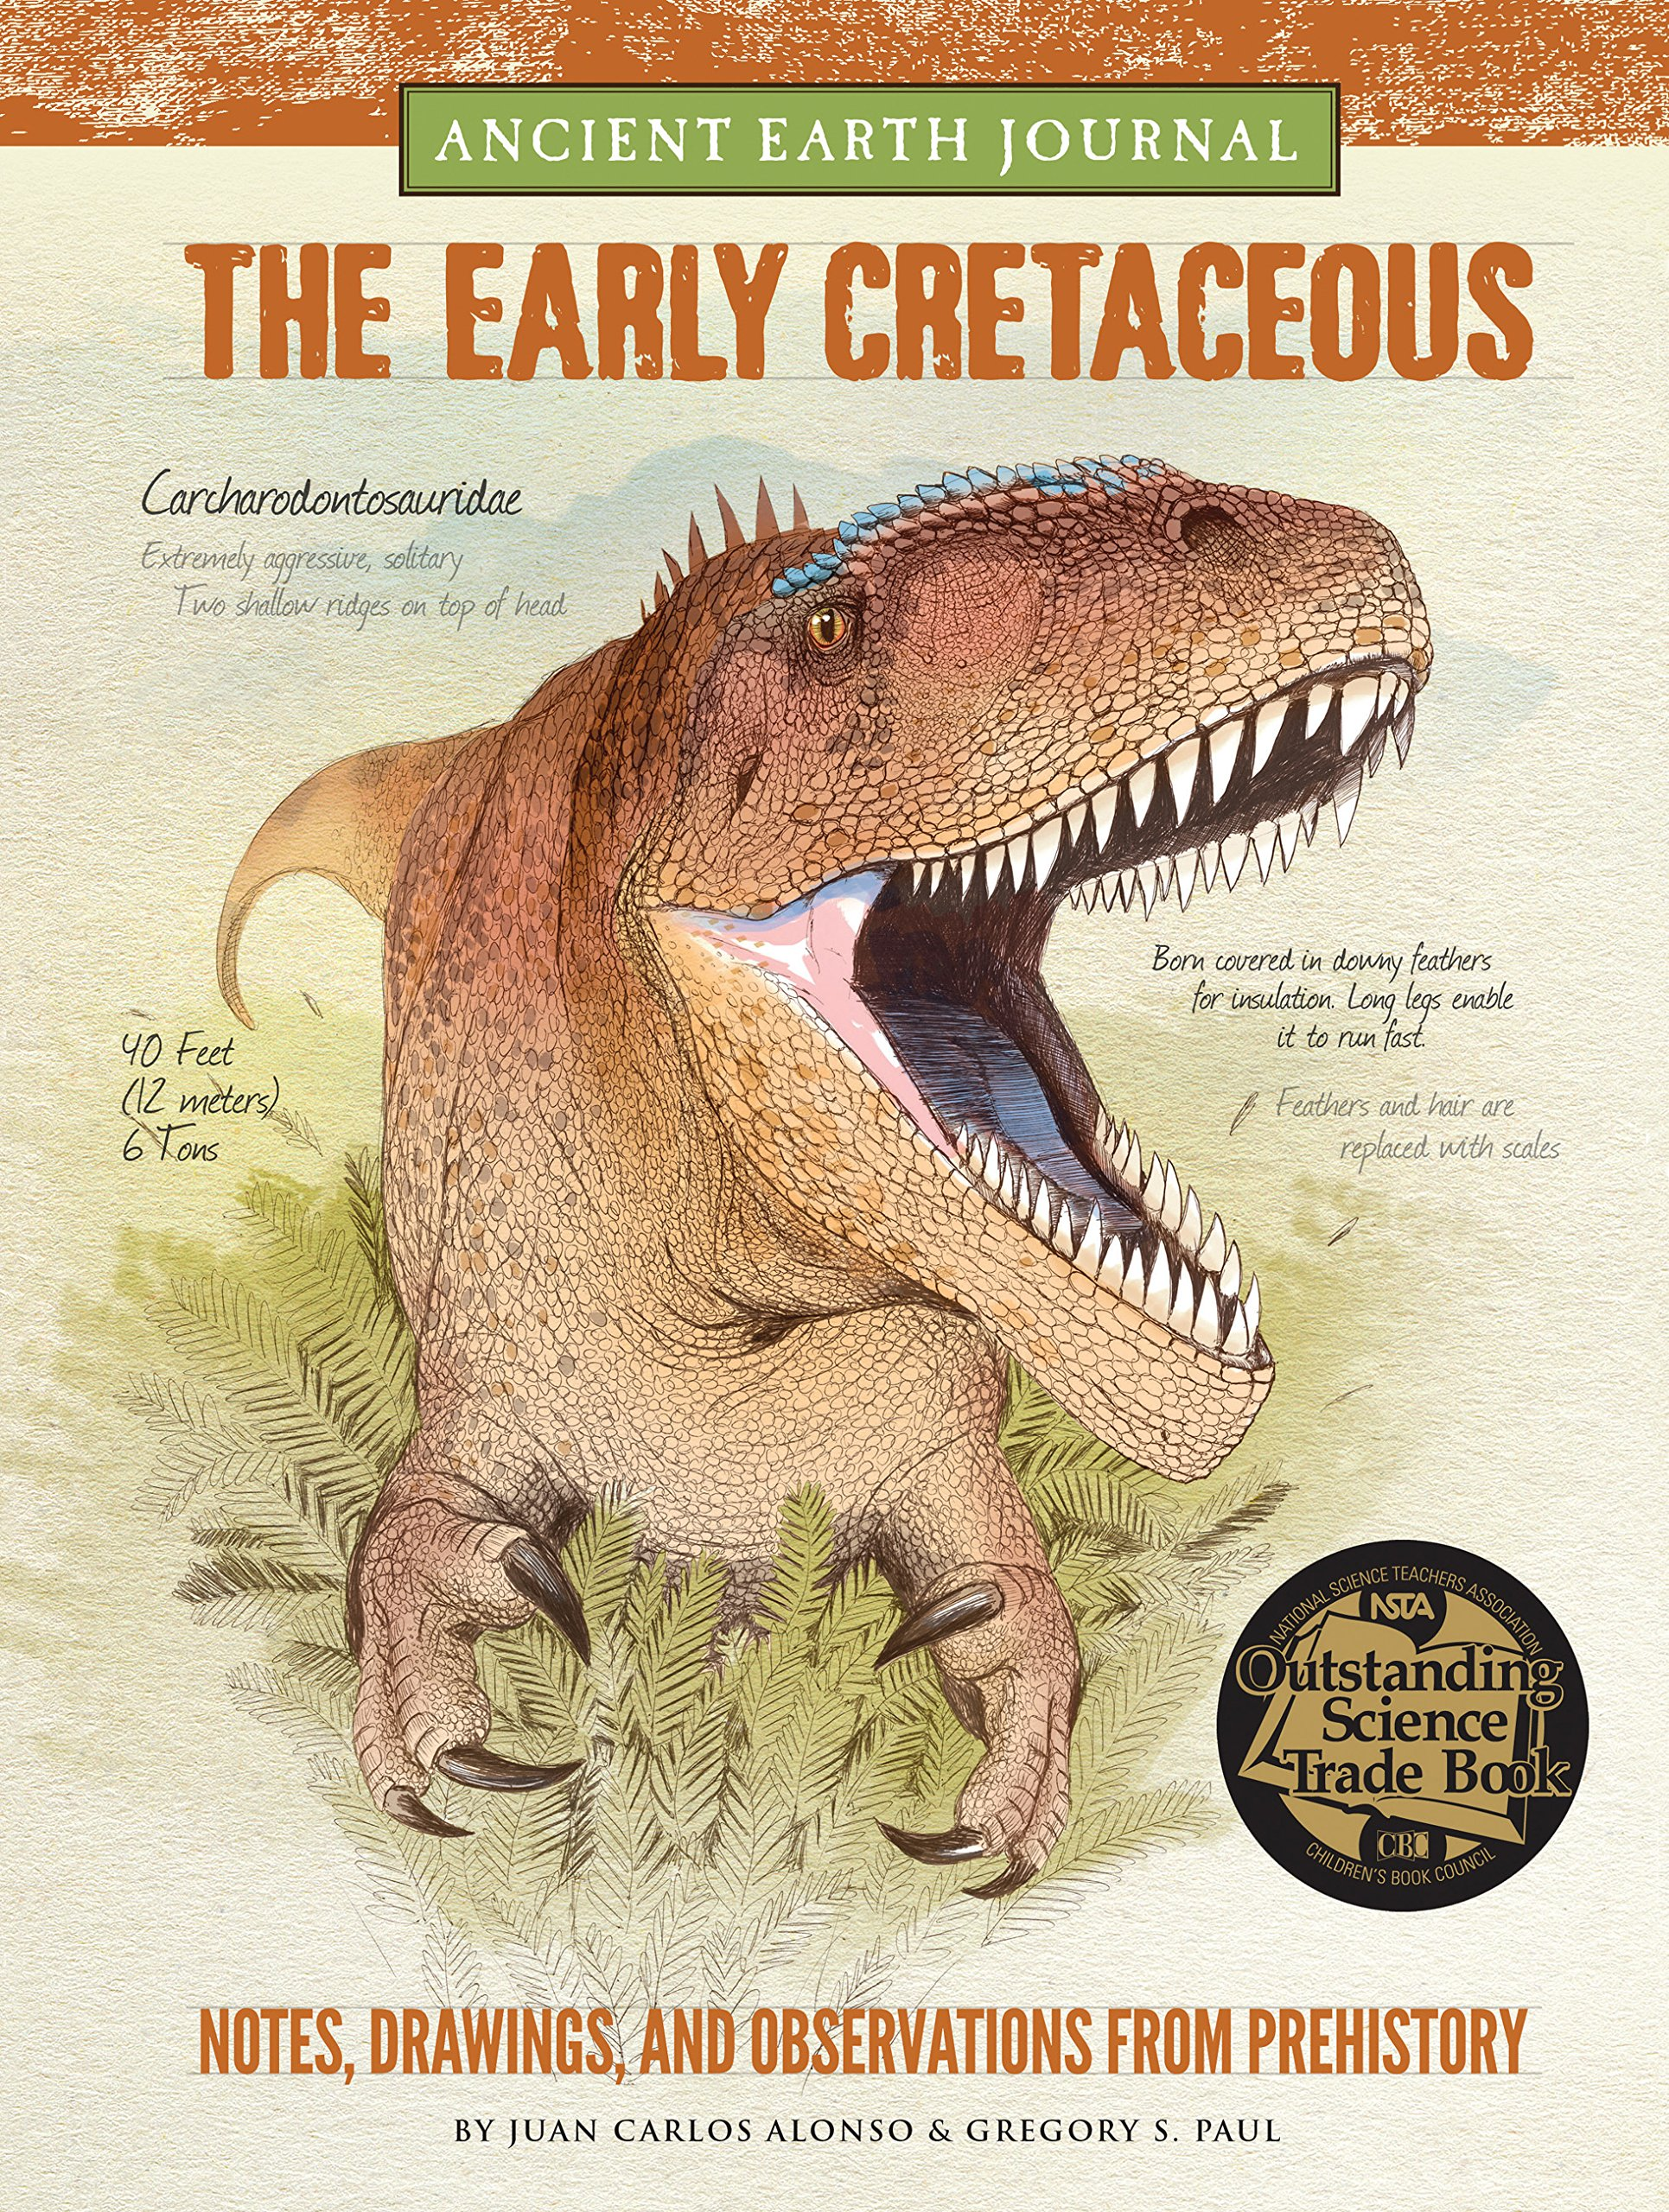 Ancient Earth Journal: The Early Cretaceous: Notes, drawings, and observations from prehistory Hardcover – September 1, 2015 Juan Carlos Alonso Gregory S. Paul Walter Foster Jr 1633220338